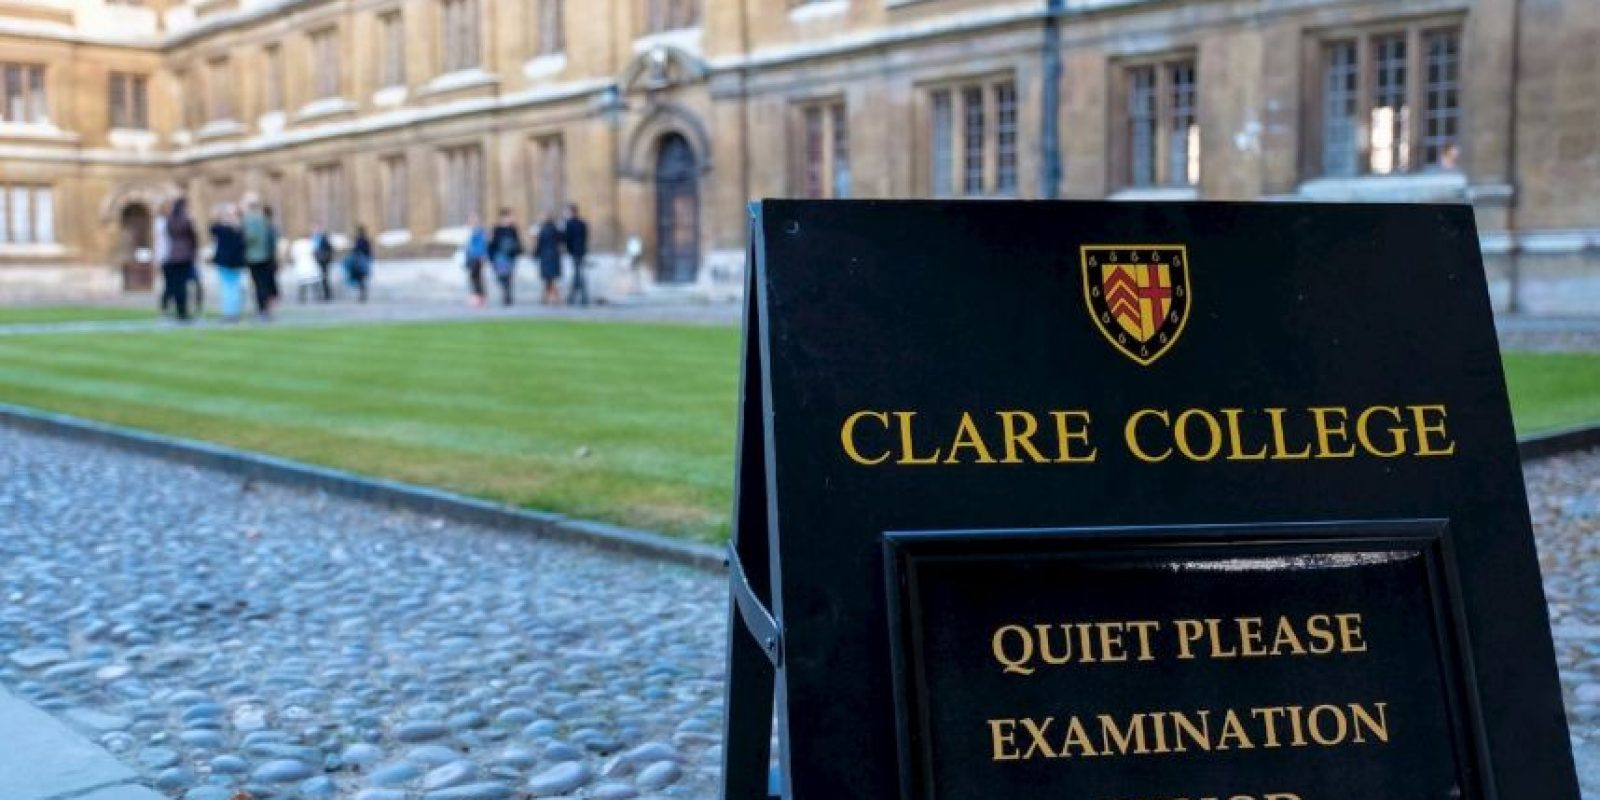 Foto: facebook.com/cambridge.university/